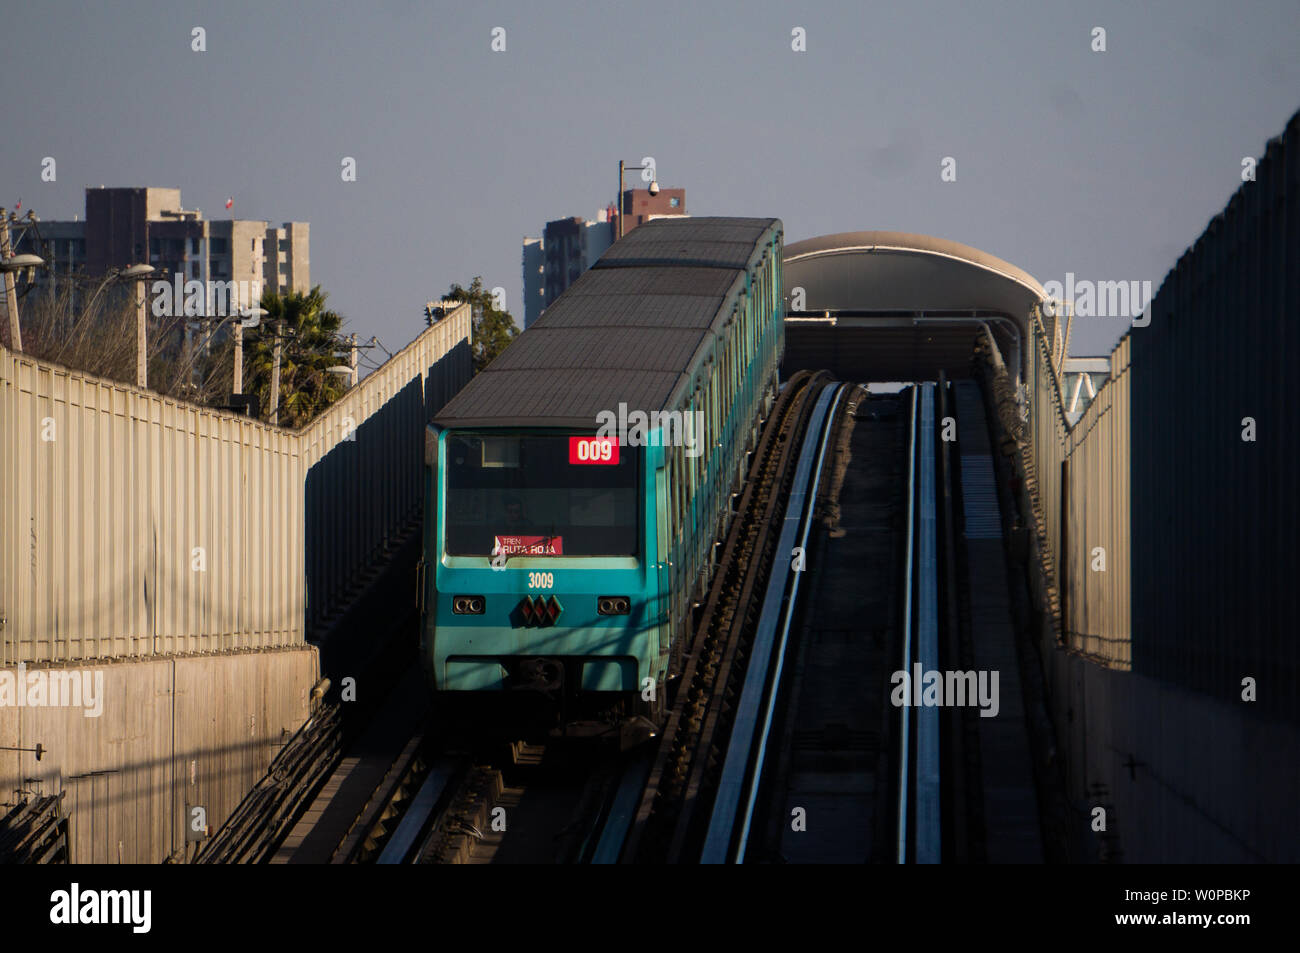 SANTIAGO, CHILE - AUGUST 2016: A Metro de Santiago entering the